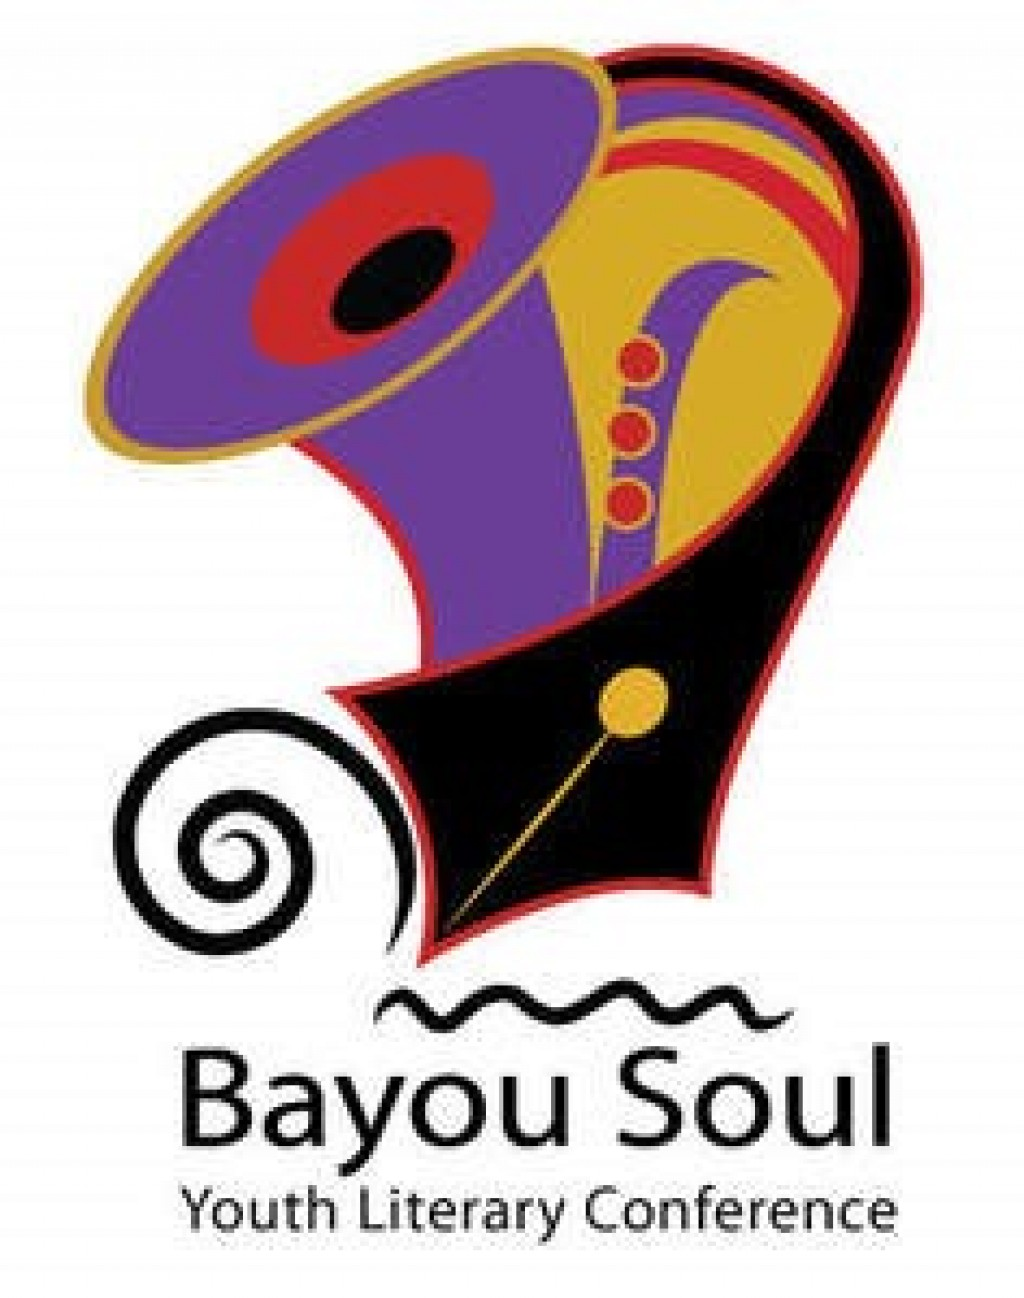 Bayou South Youth Literary Conference